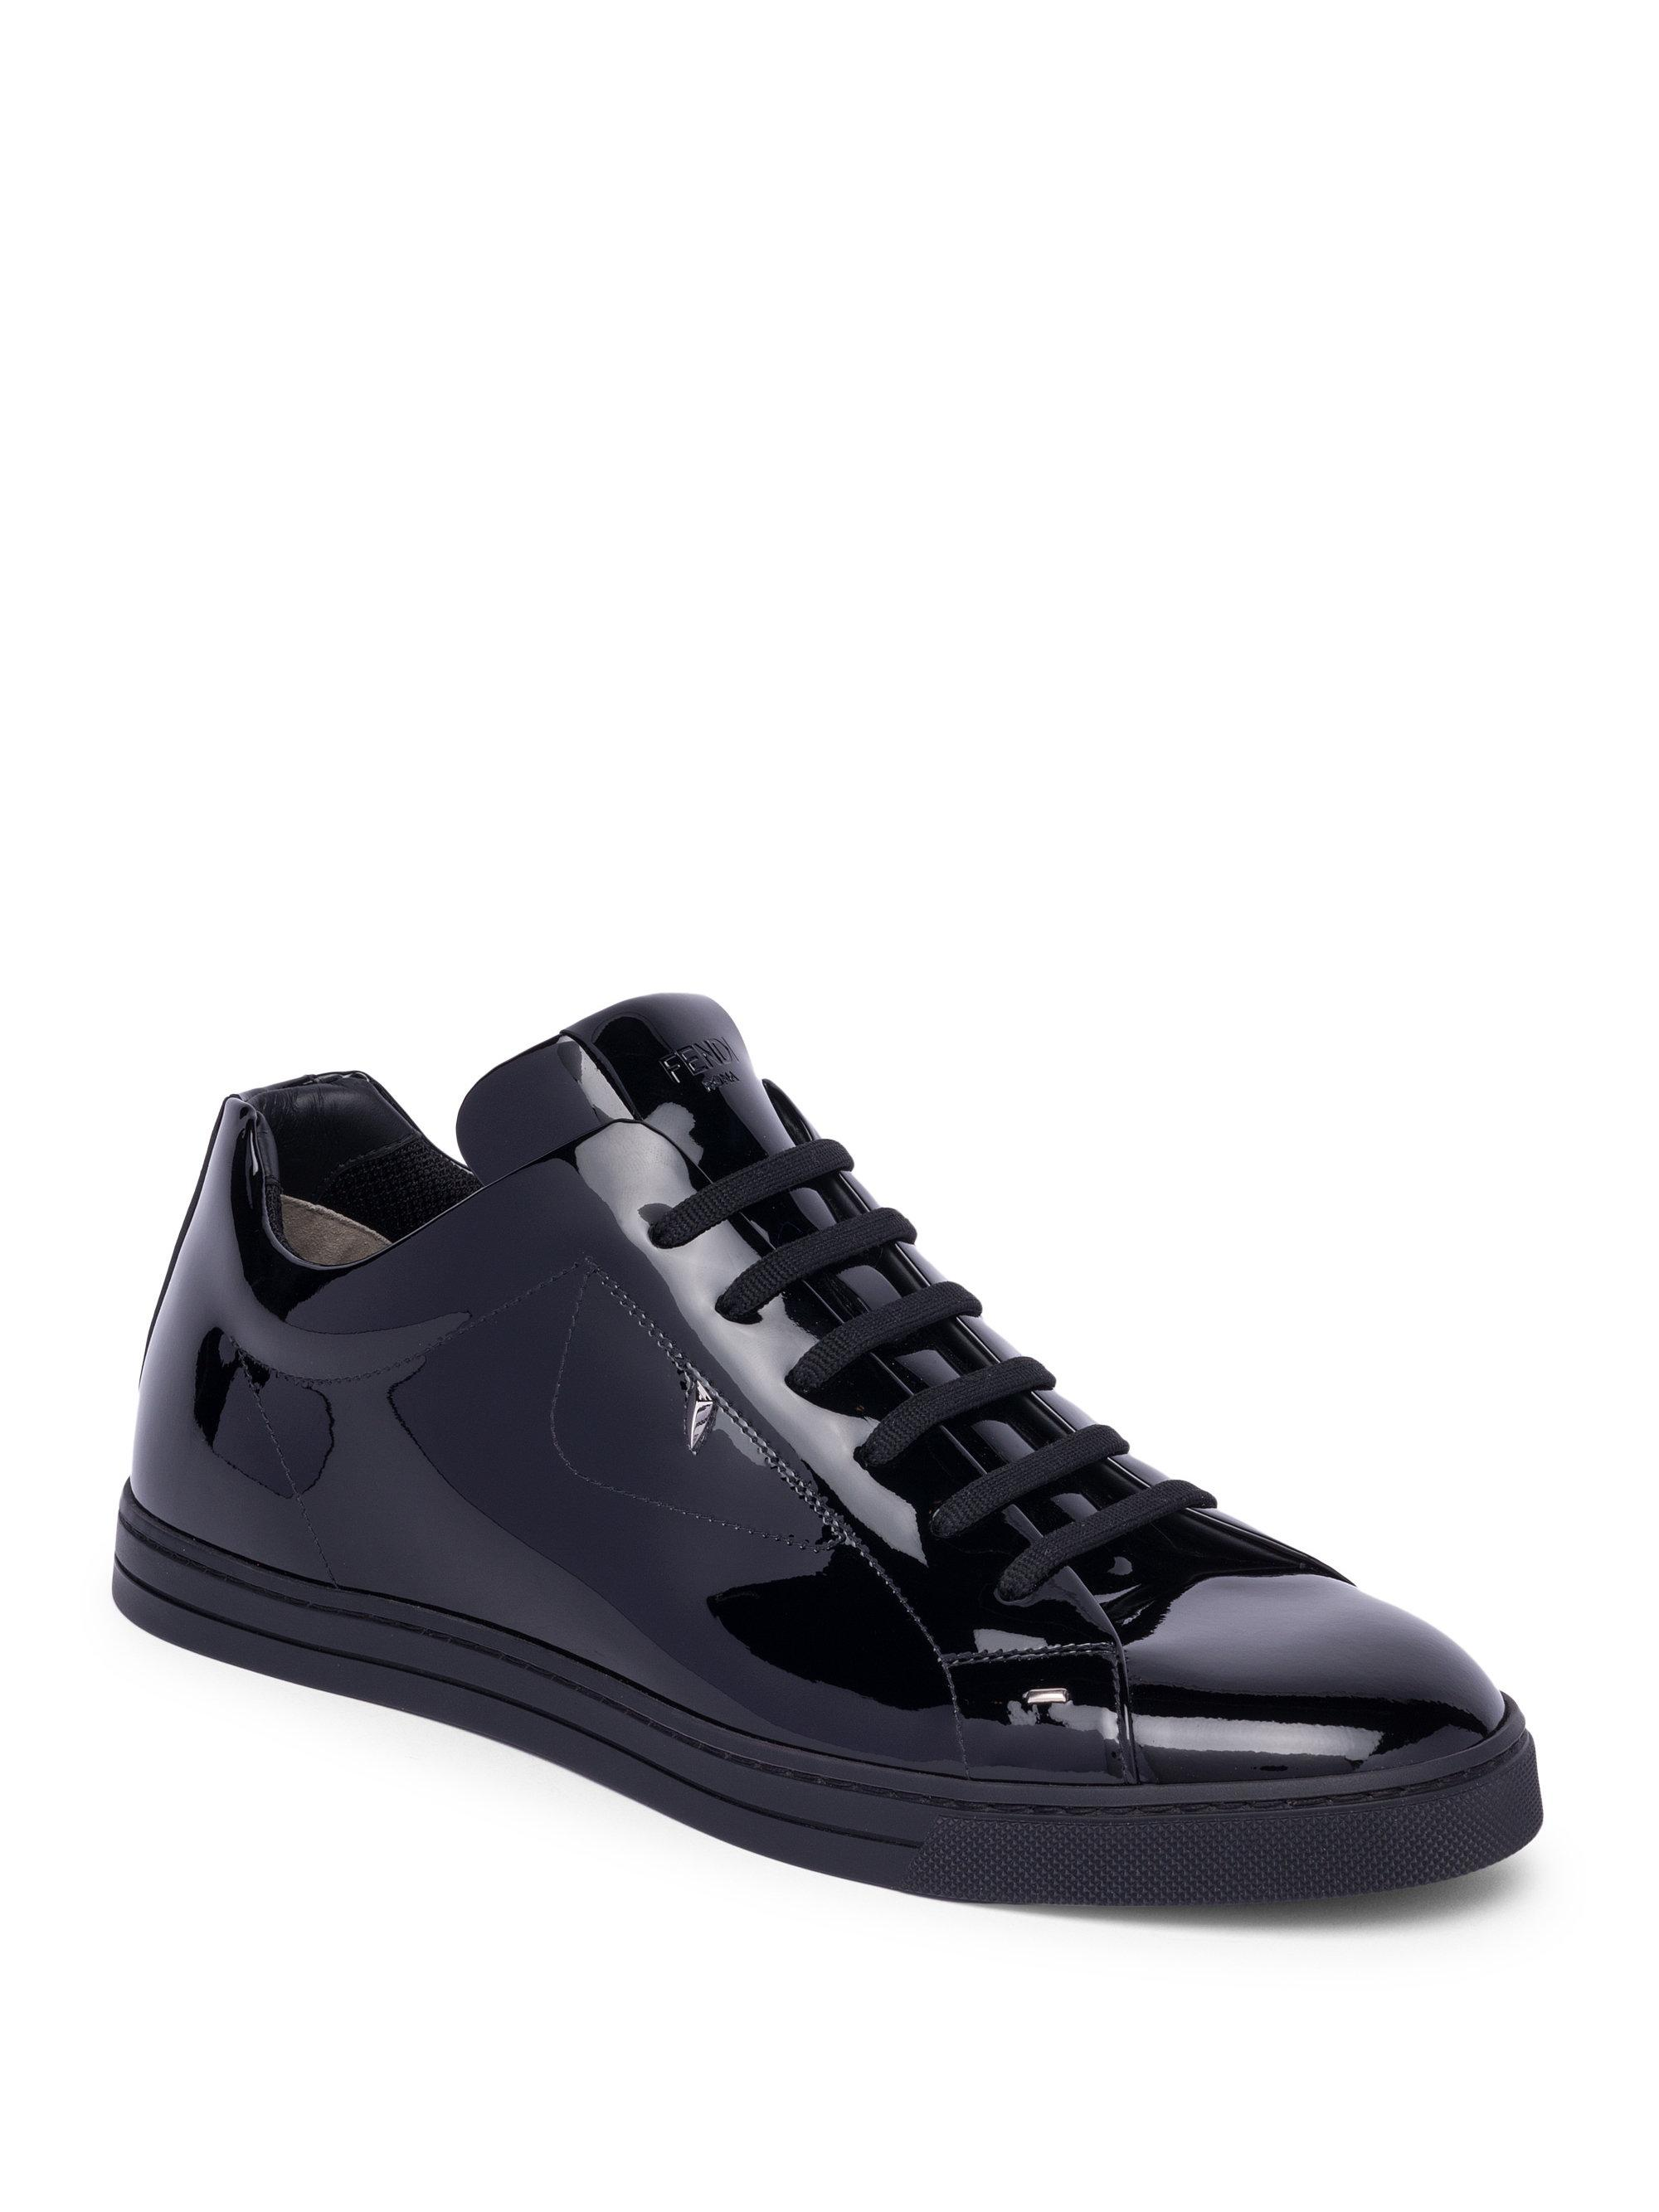 Fendi Monster Patent Leather Sneakers In Black For Men Lyst